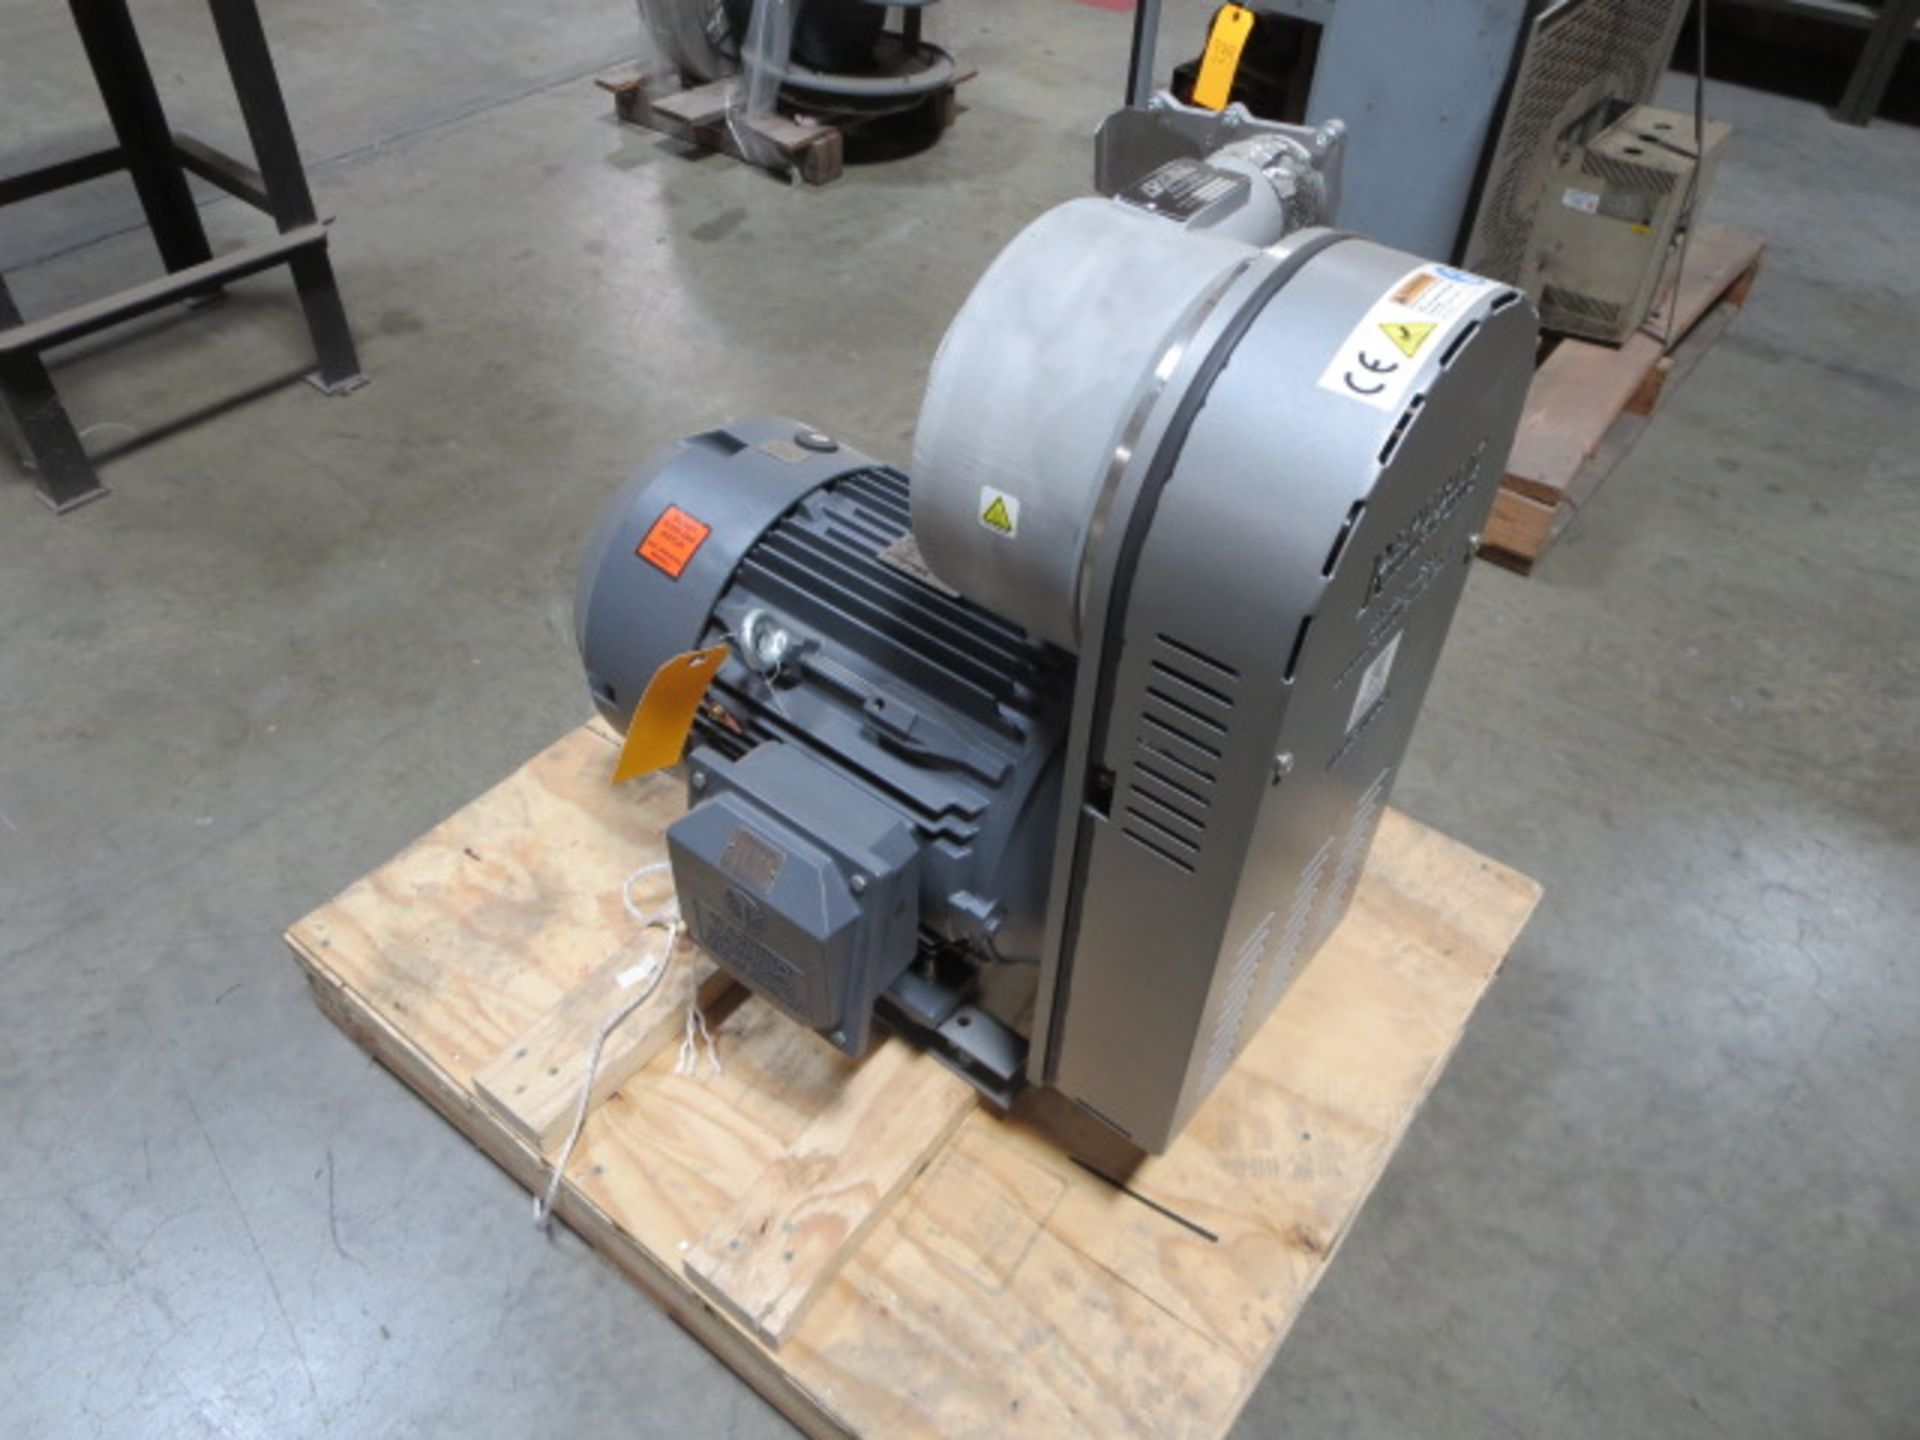 Lotto 336 - Republic Manufacturing Motor and Blower, model 200-9600HC